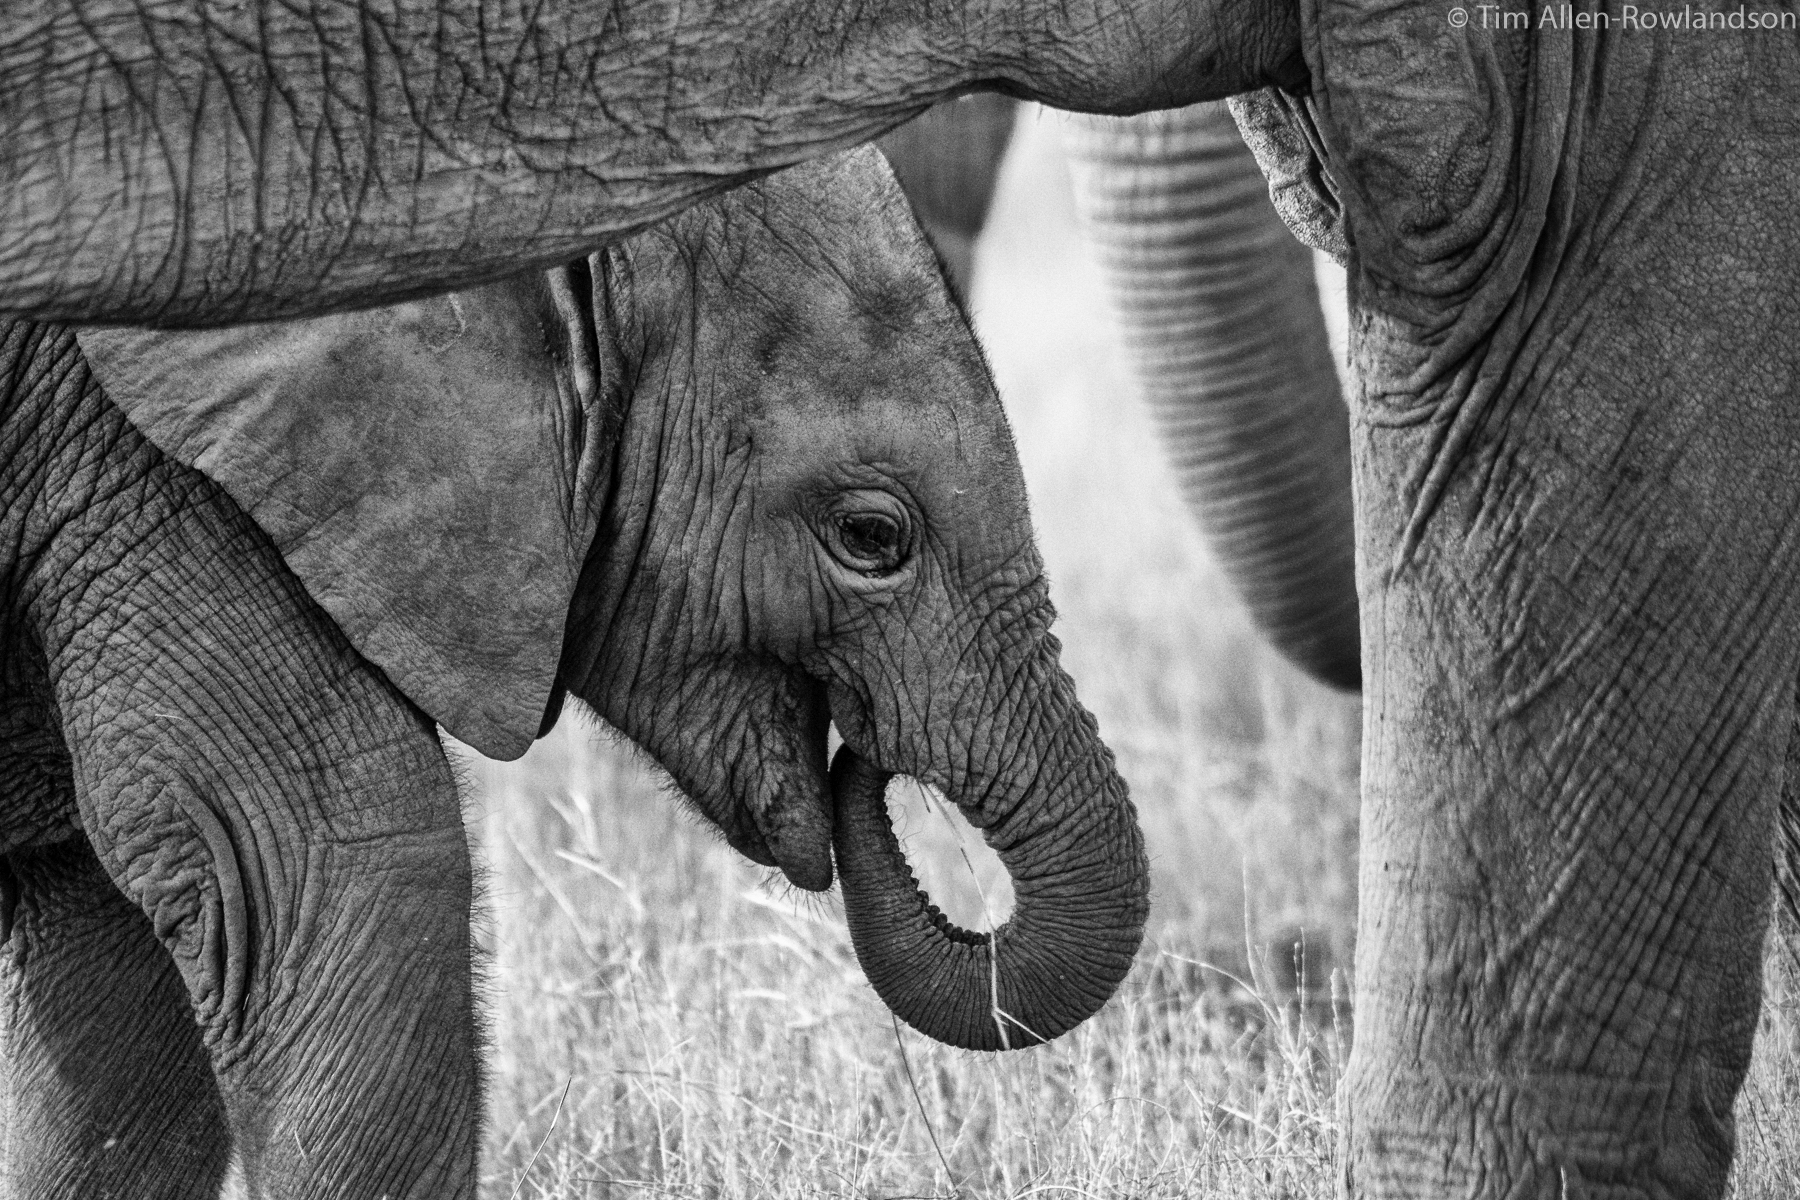 Elephant calf keeping close to its mother, Amboseli